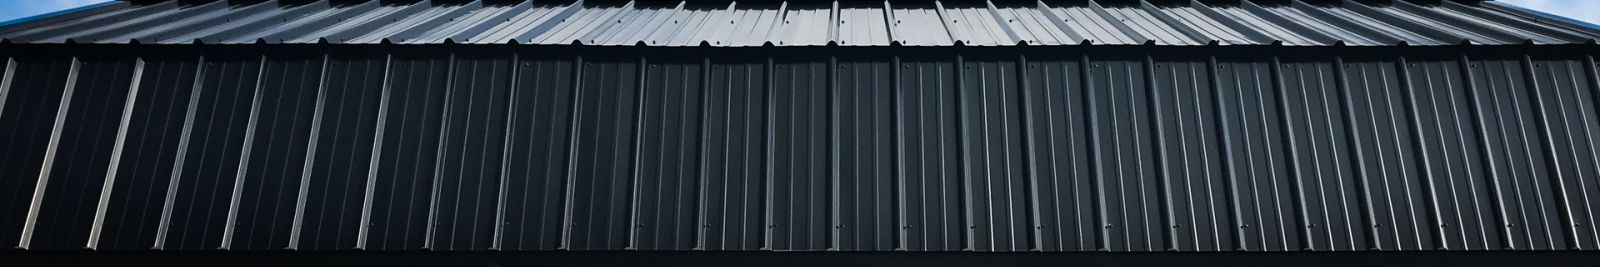 Metal roofing for custom sheds in KY and TN